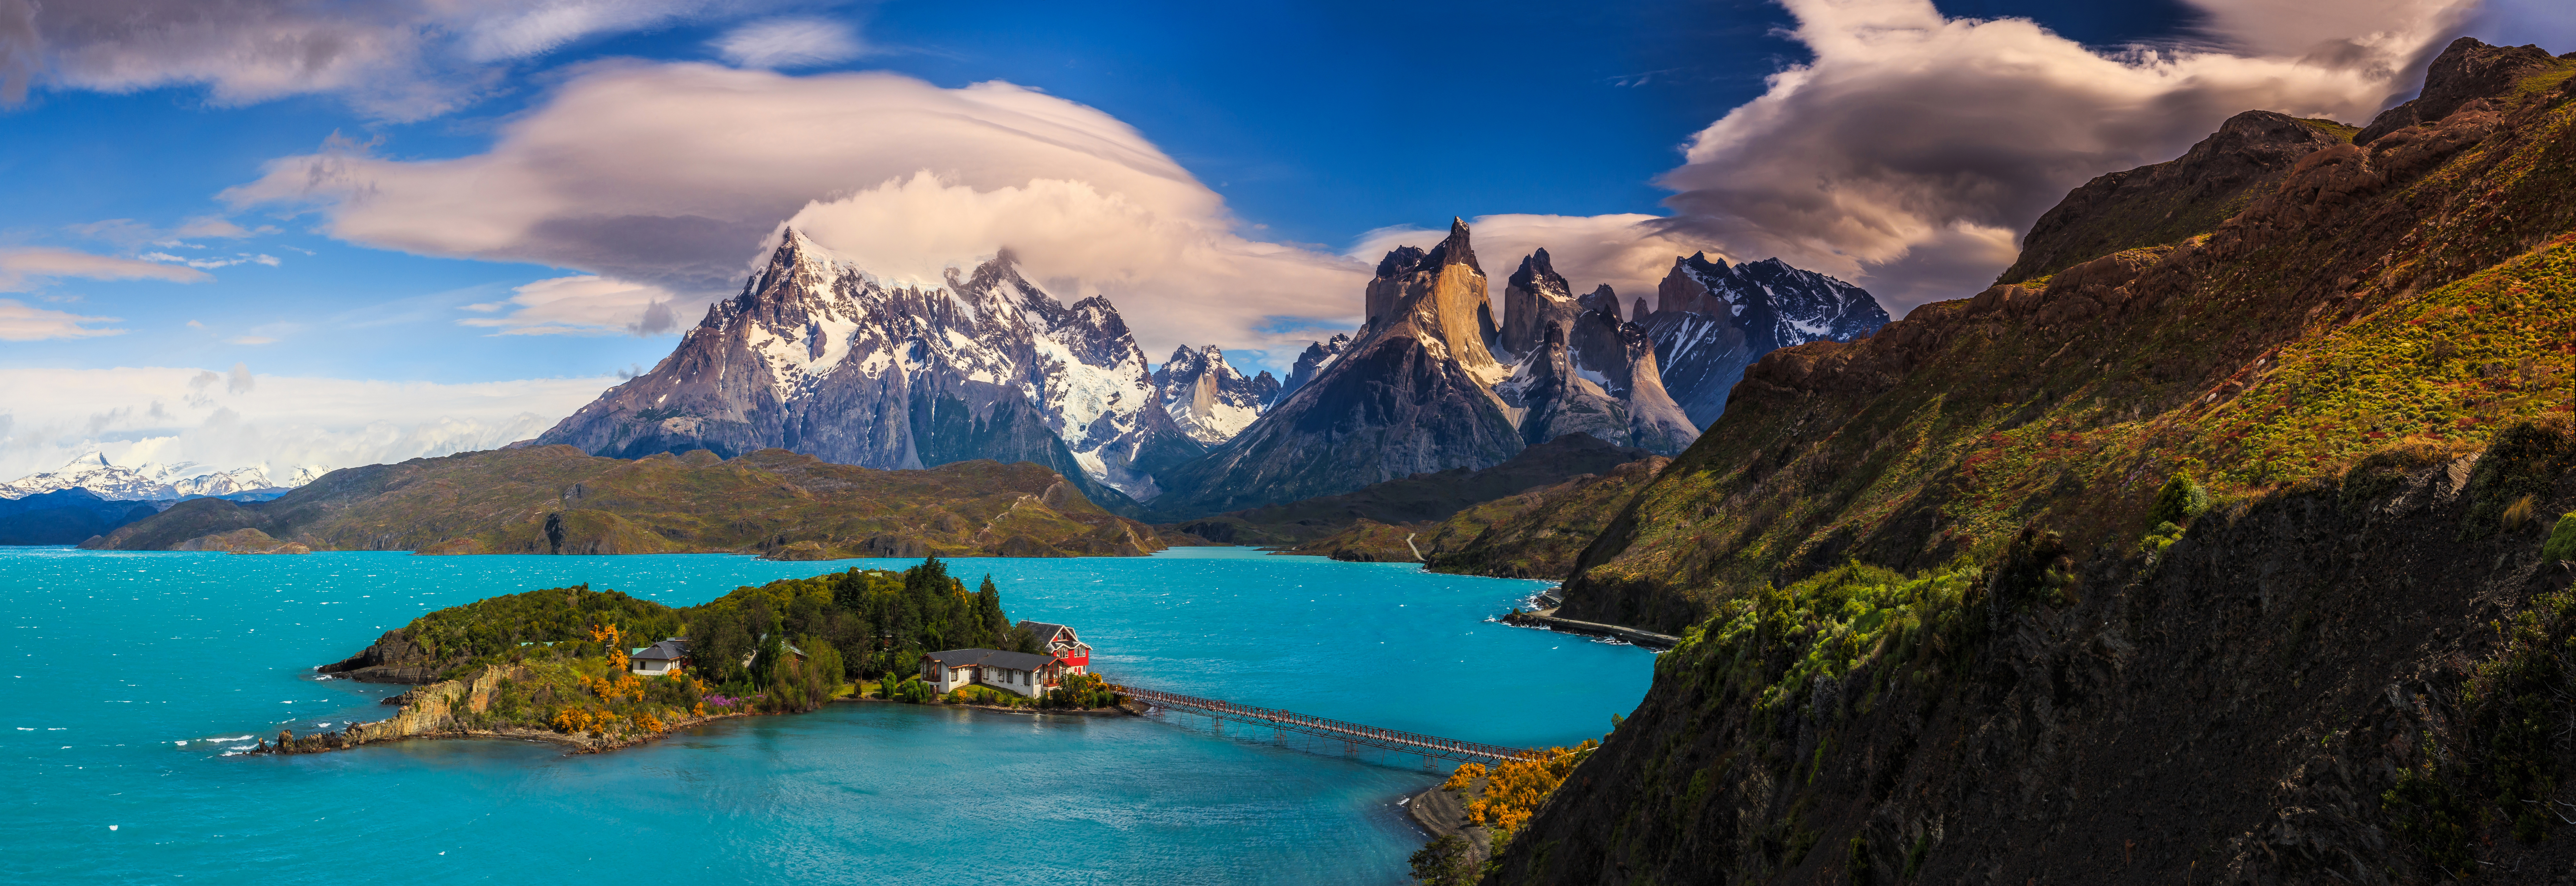 General 12500x4301 nature landscape mountains panorama panoramas Chile Patagonia lake torres del paine national park